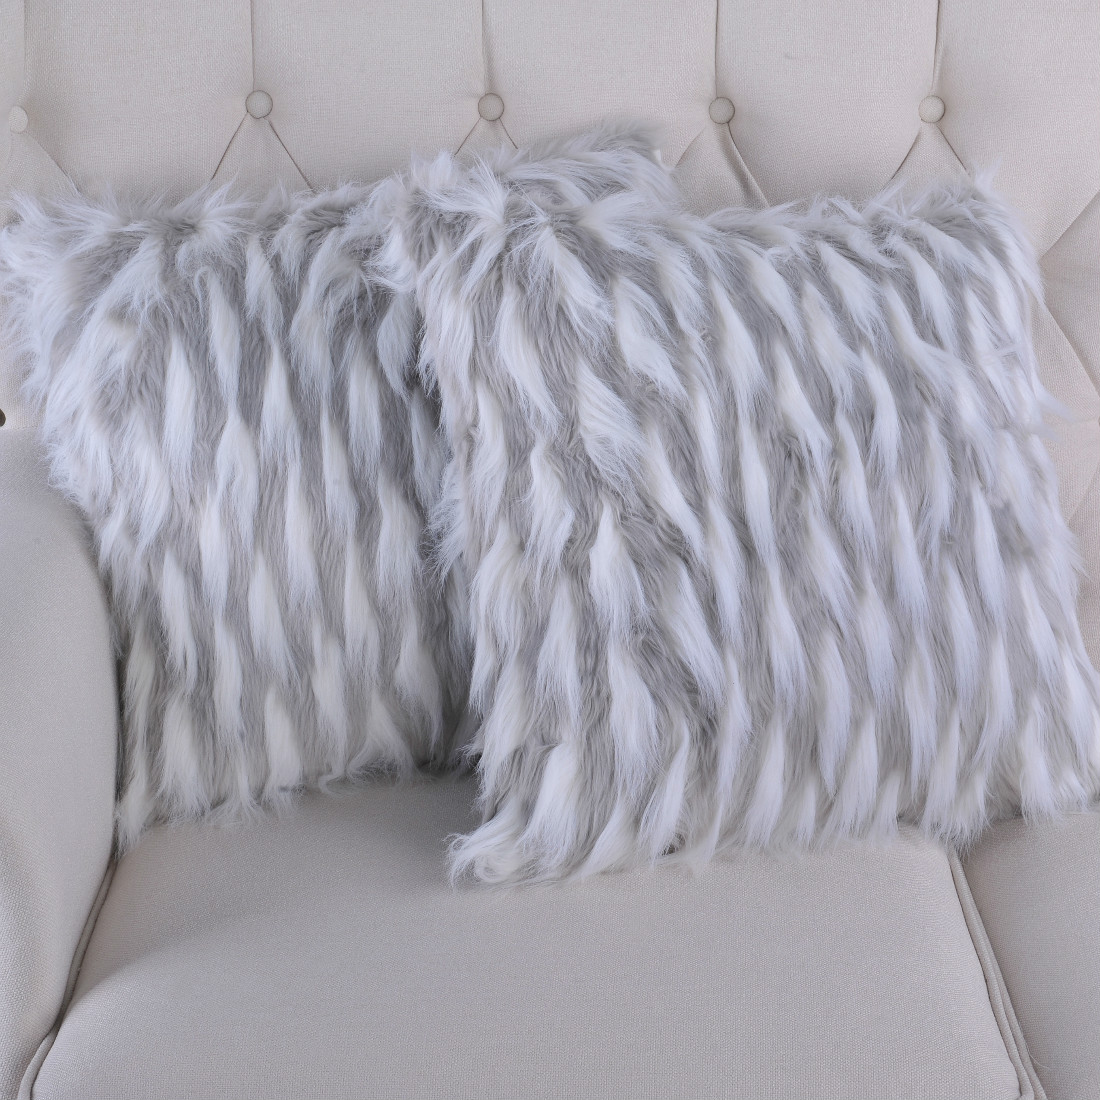 Serenta Feathery Faux Fur 2 Piece Pillow Shell Set